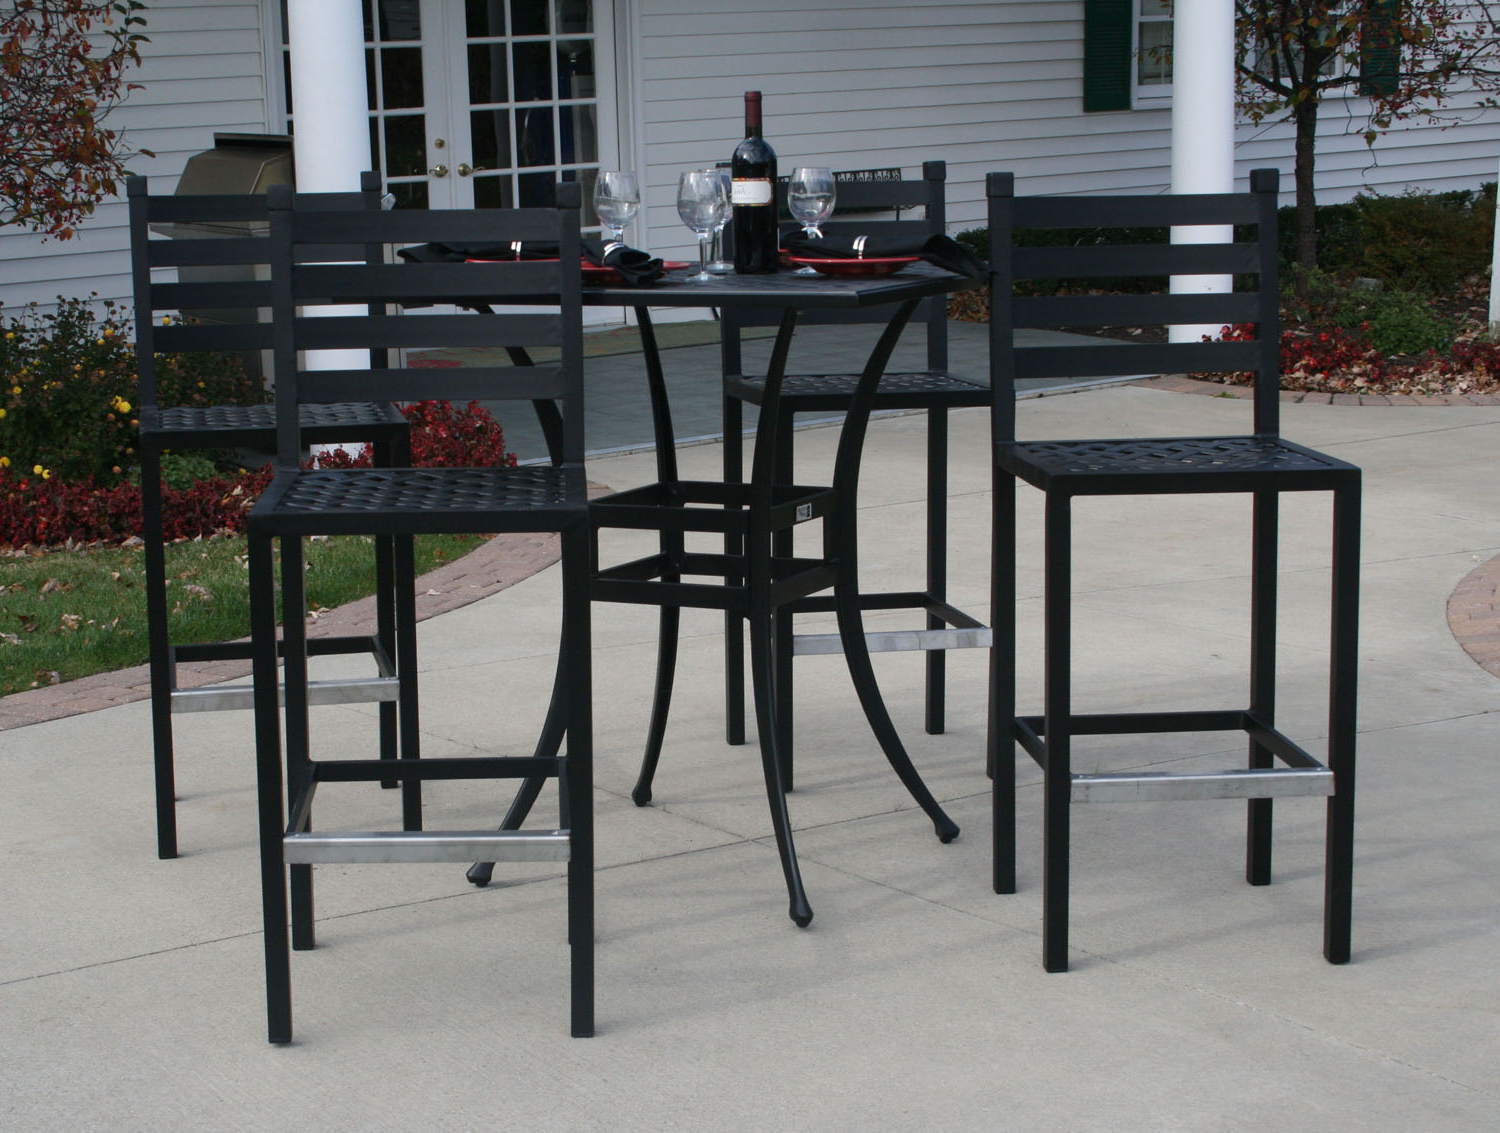 Latest Patio Square Bar Dining Tables With Regard To Ansley Luxury 4 Person All Welded Cast Aluminum Patio (View 12 of 25)